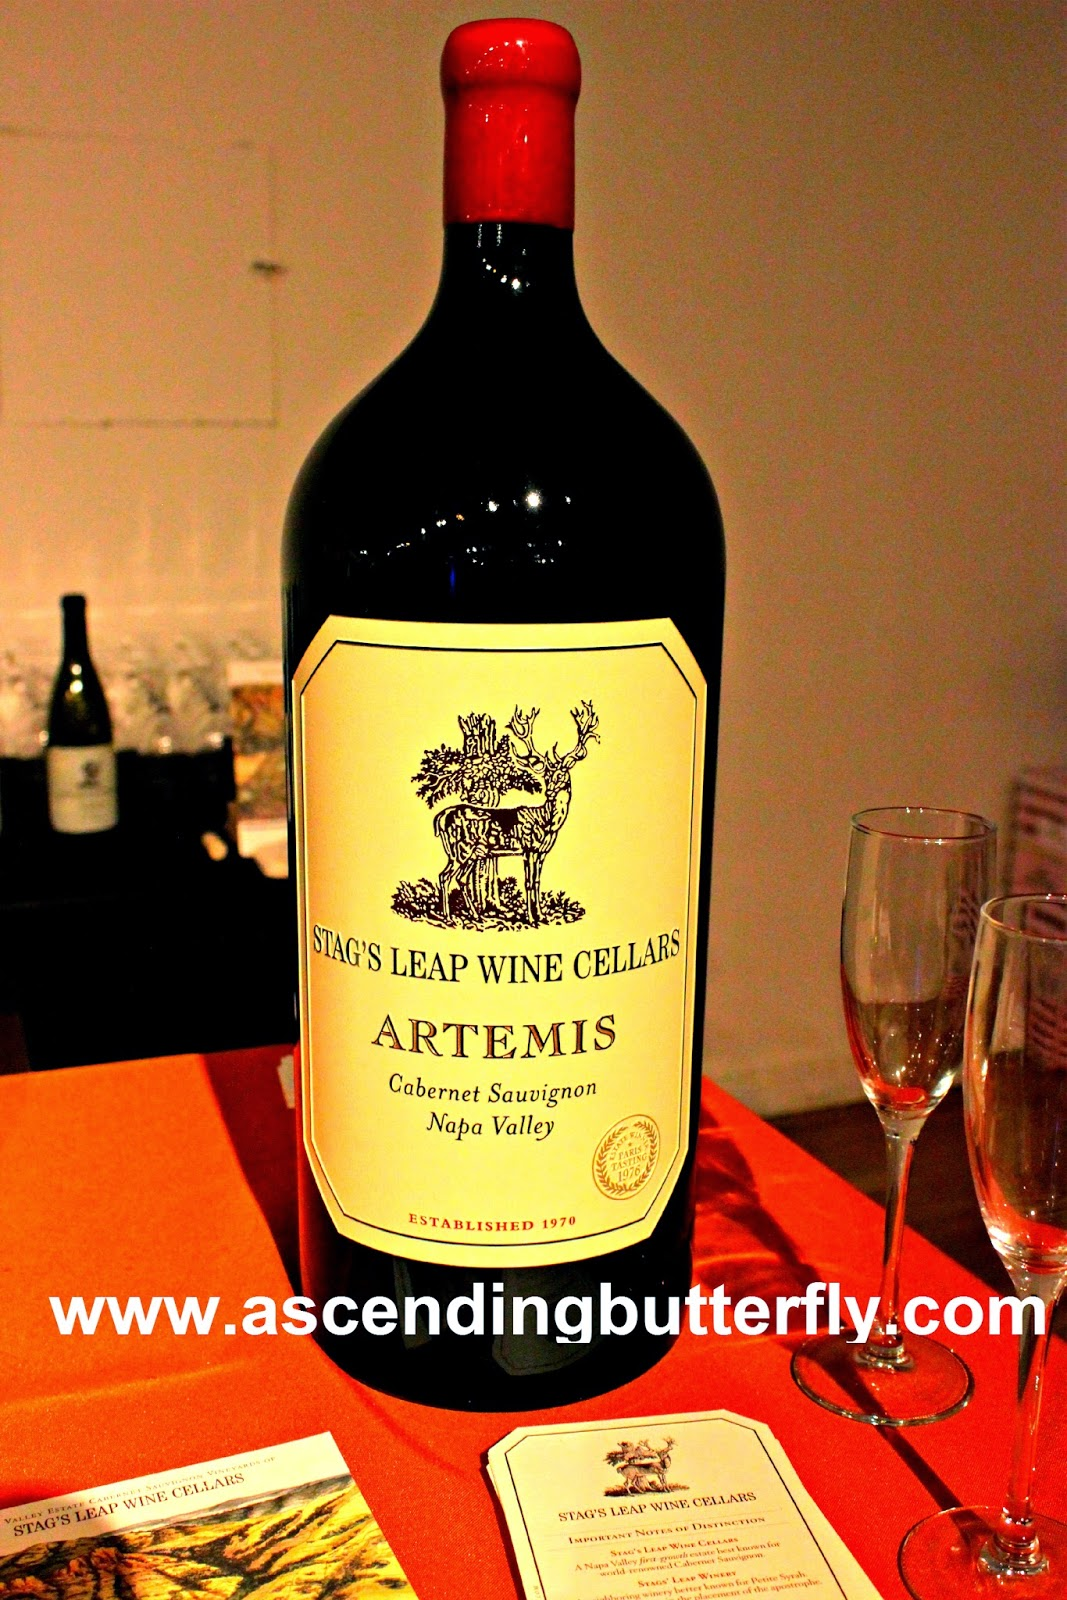 Stag's Leap Wine Cellars Artemis Cabernet Sauvignon Napa Valley The Luxury Review Fall 2014